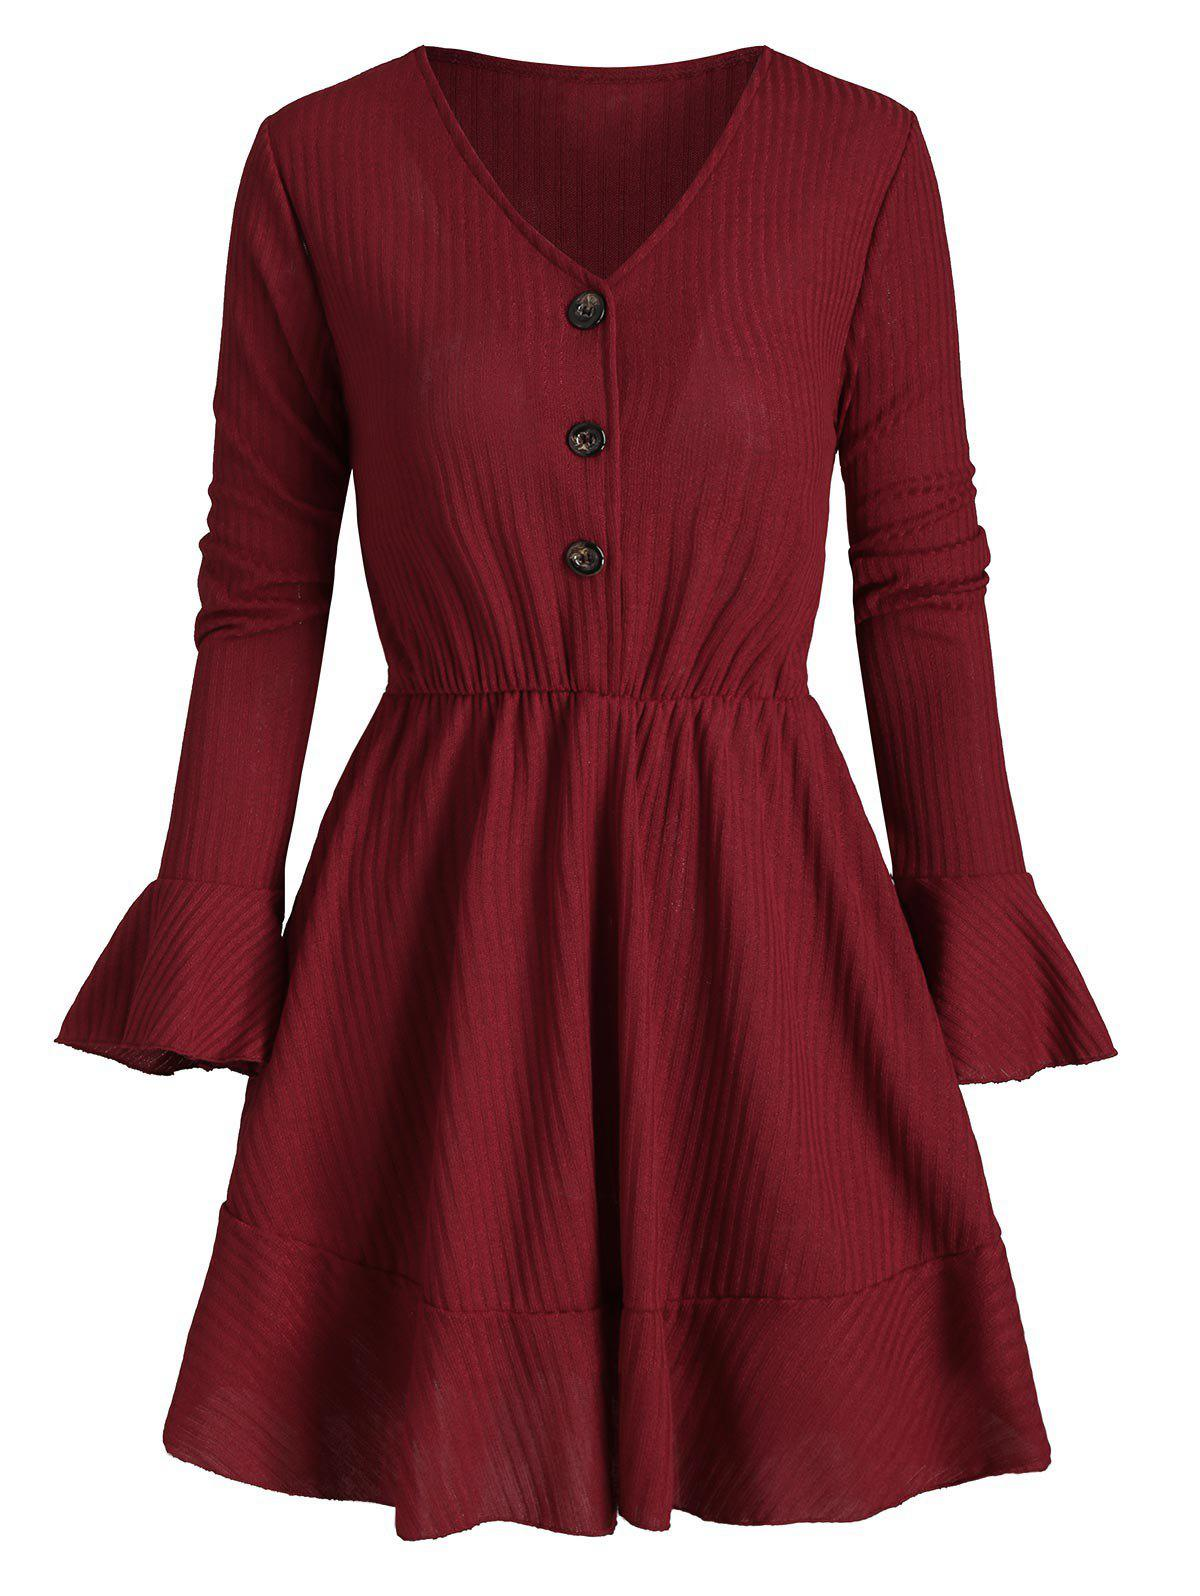 Half Button Poet Sleeves Solid Knit Dress - RED WINE M